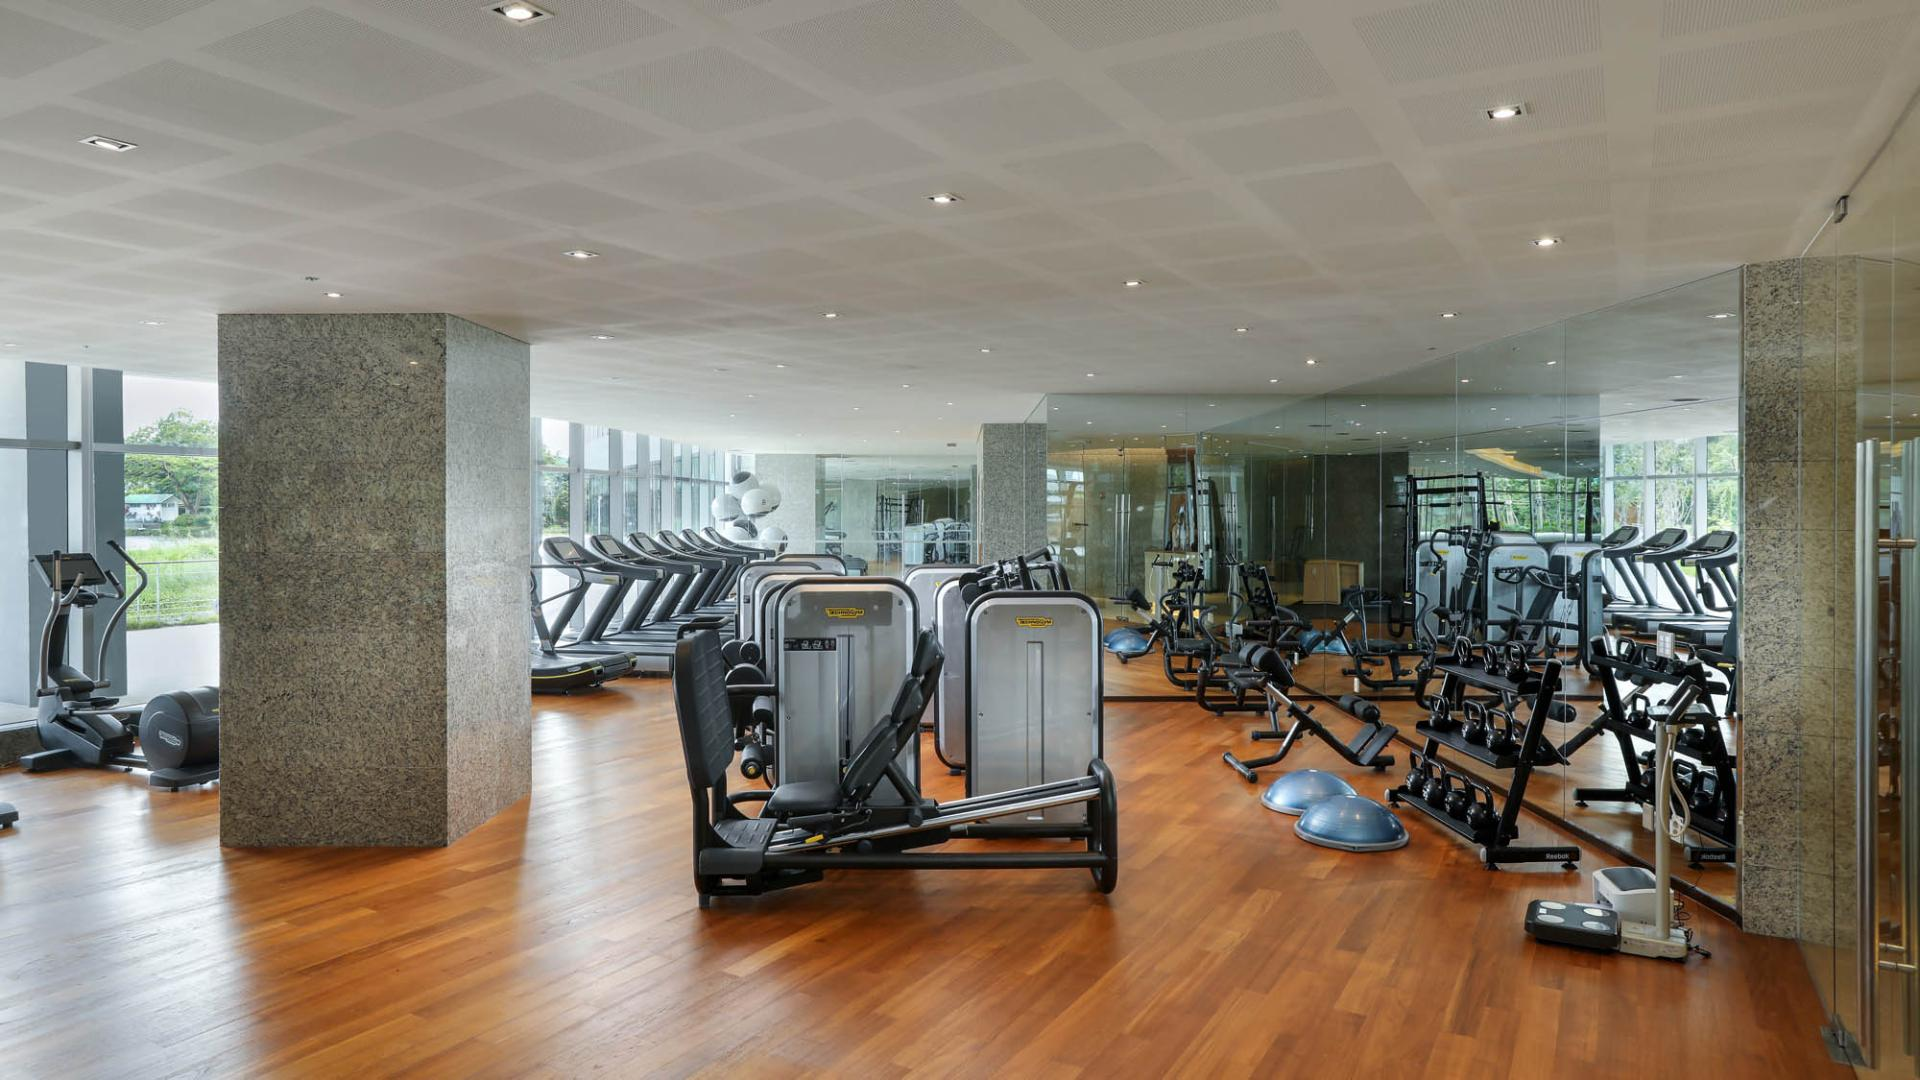 Lotte Hotel Yangon-Facilities-Spa & Fitness-Swimming Pool